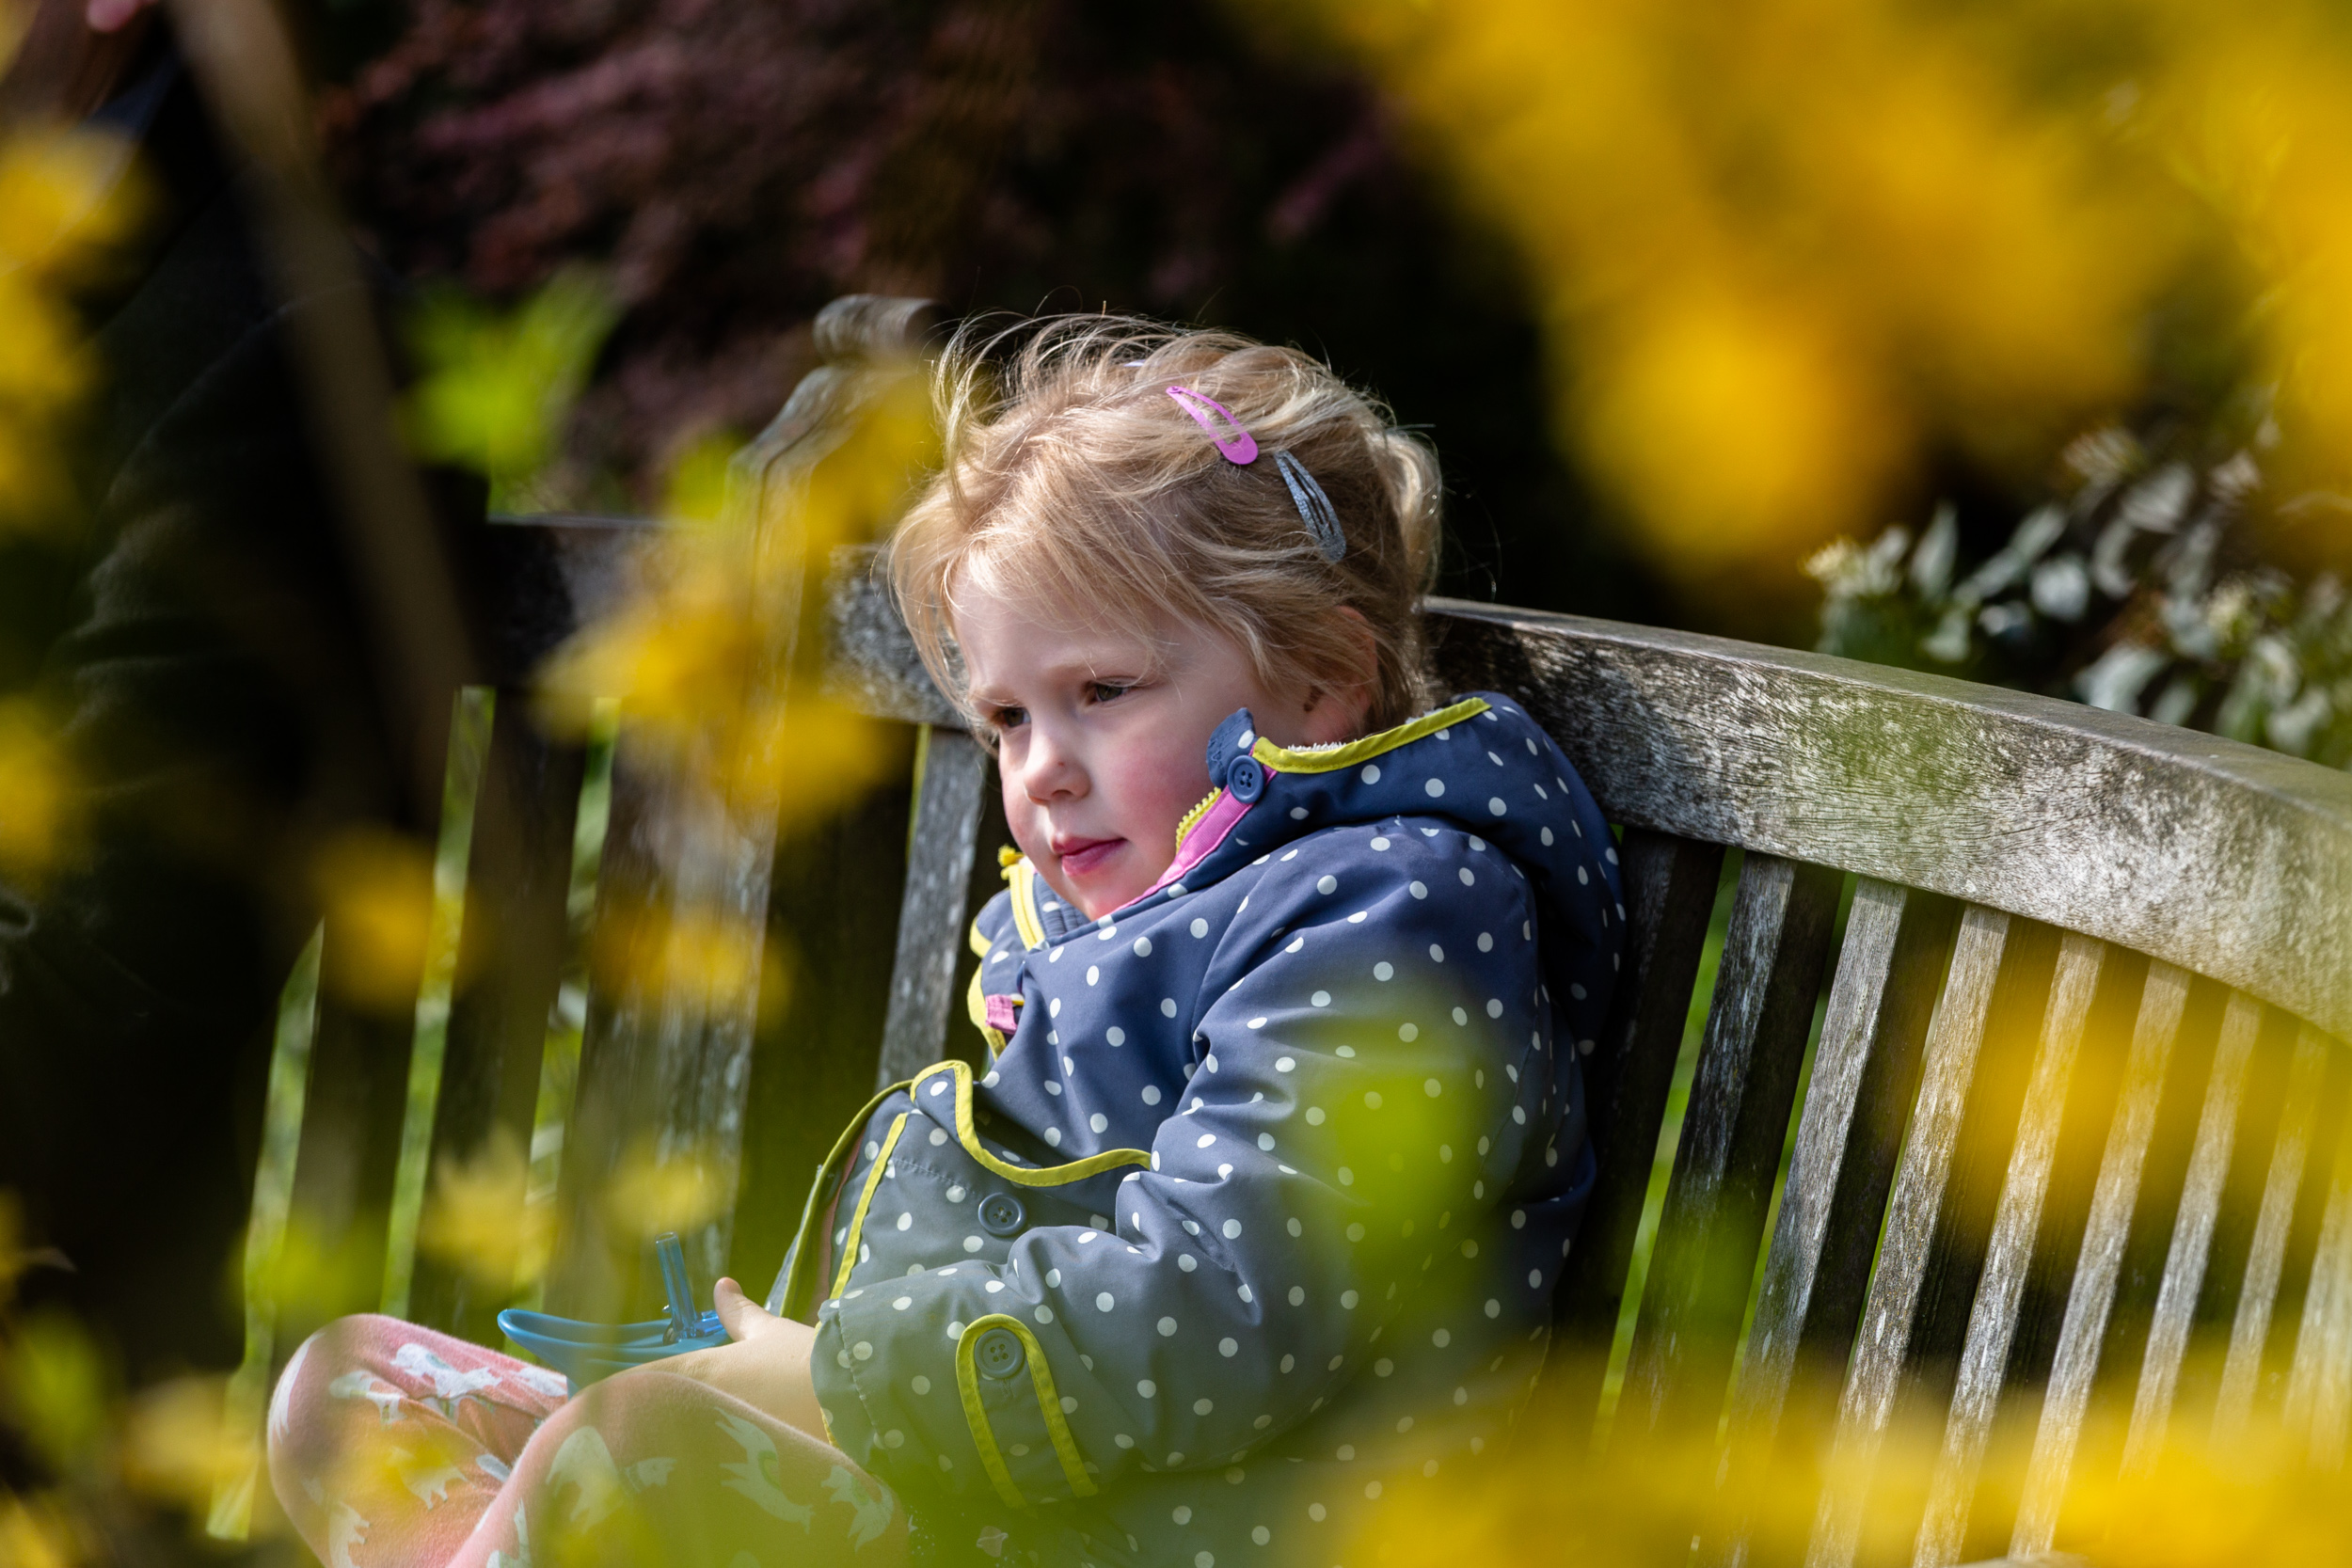 Children portrait photography South West London